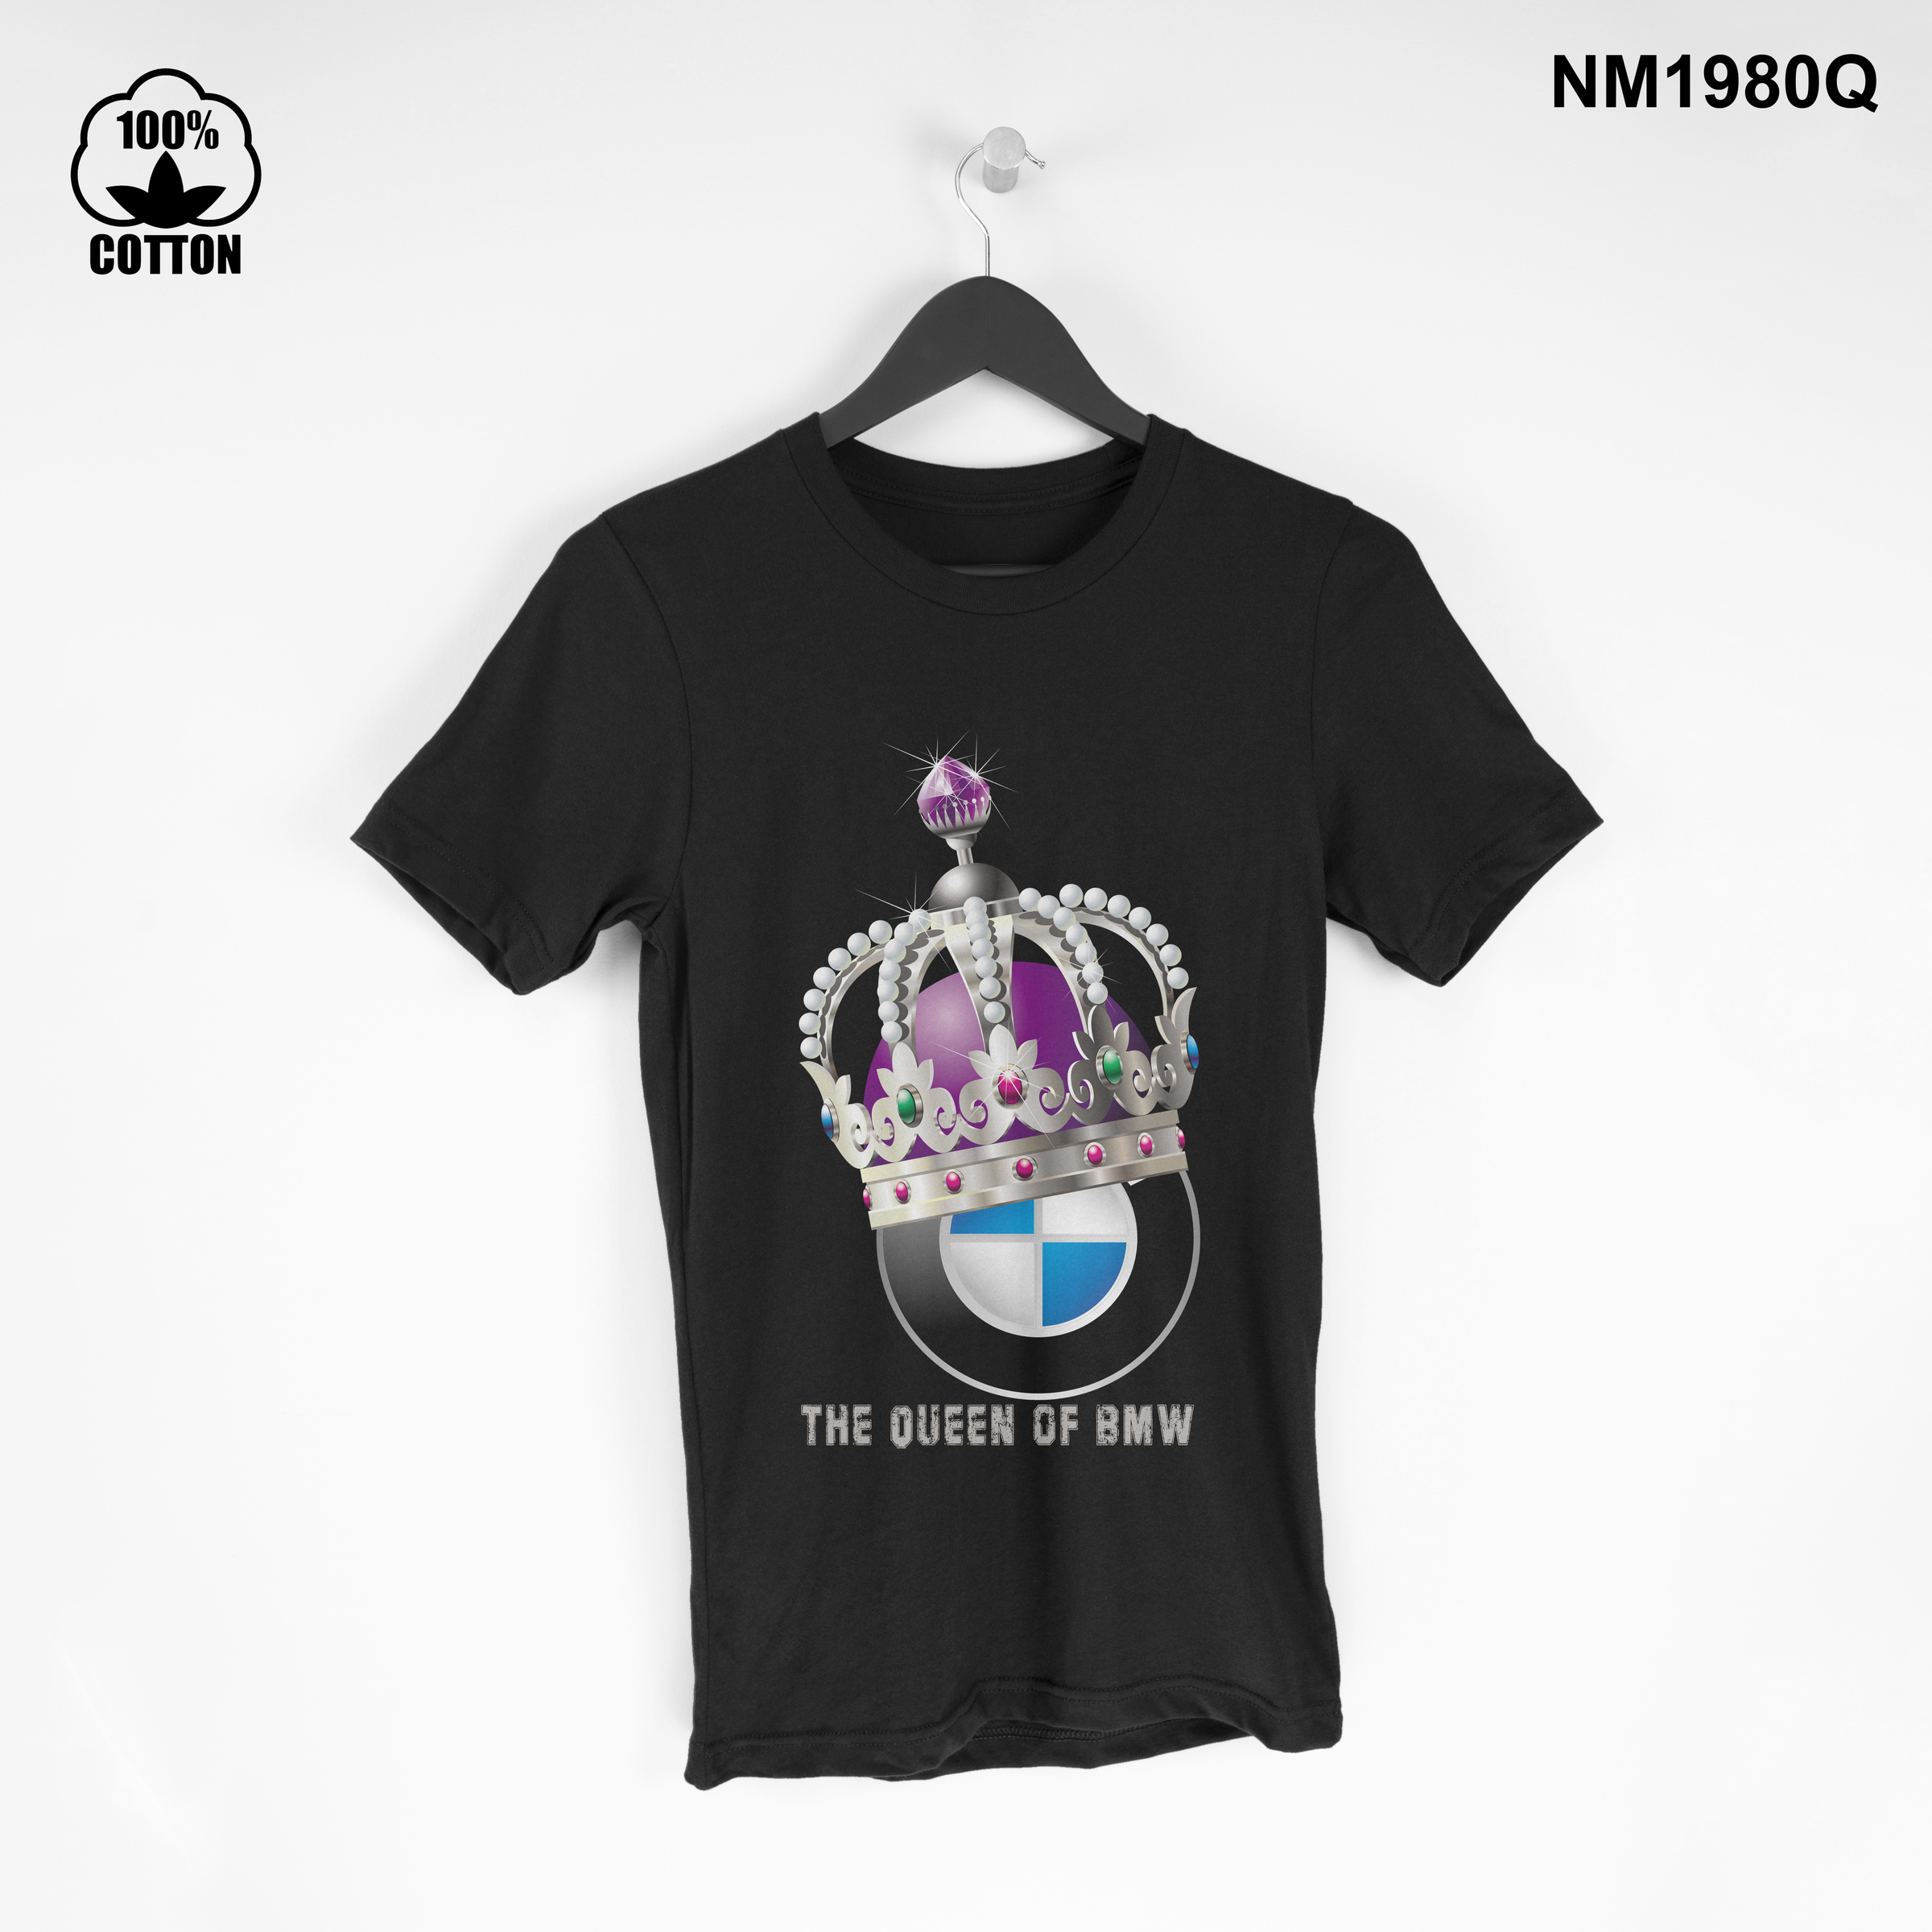 1.37 the Queen of BMW T Shirt Tee mens Clothing New Design black.jpg